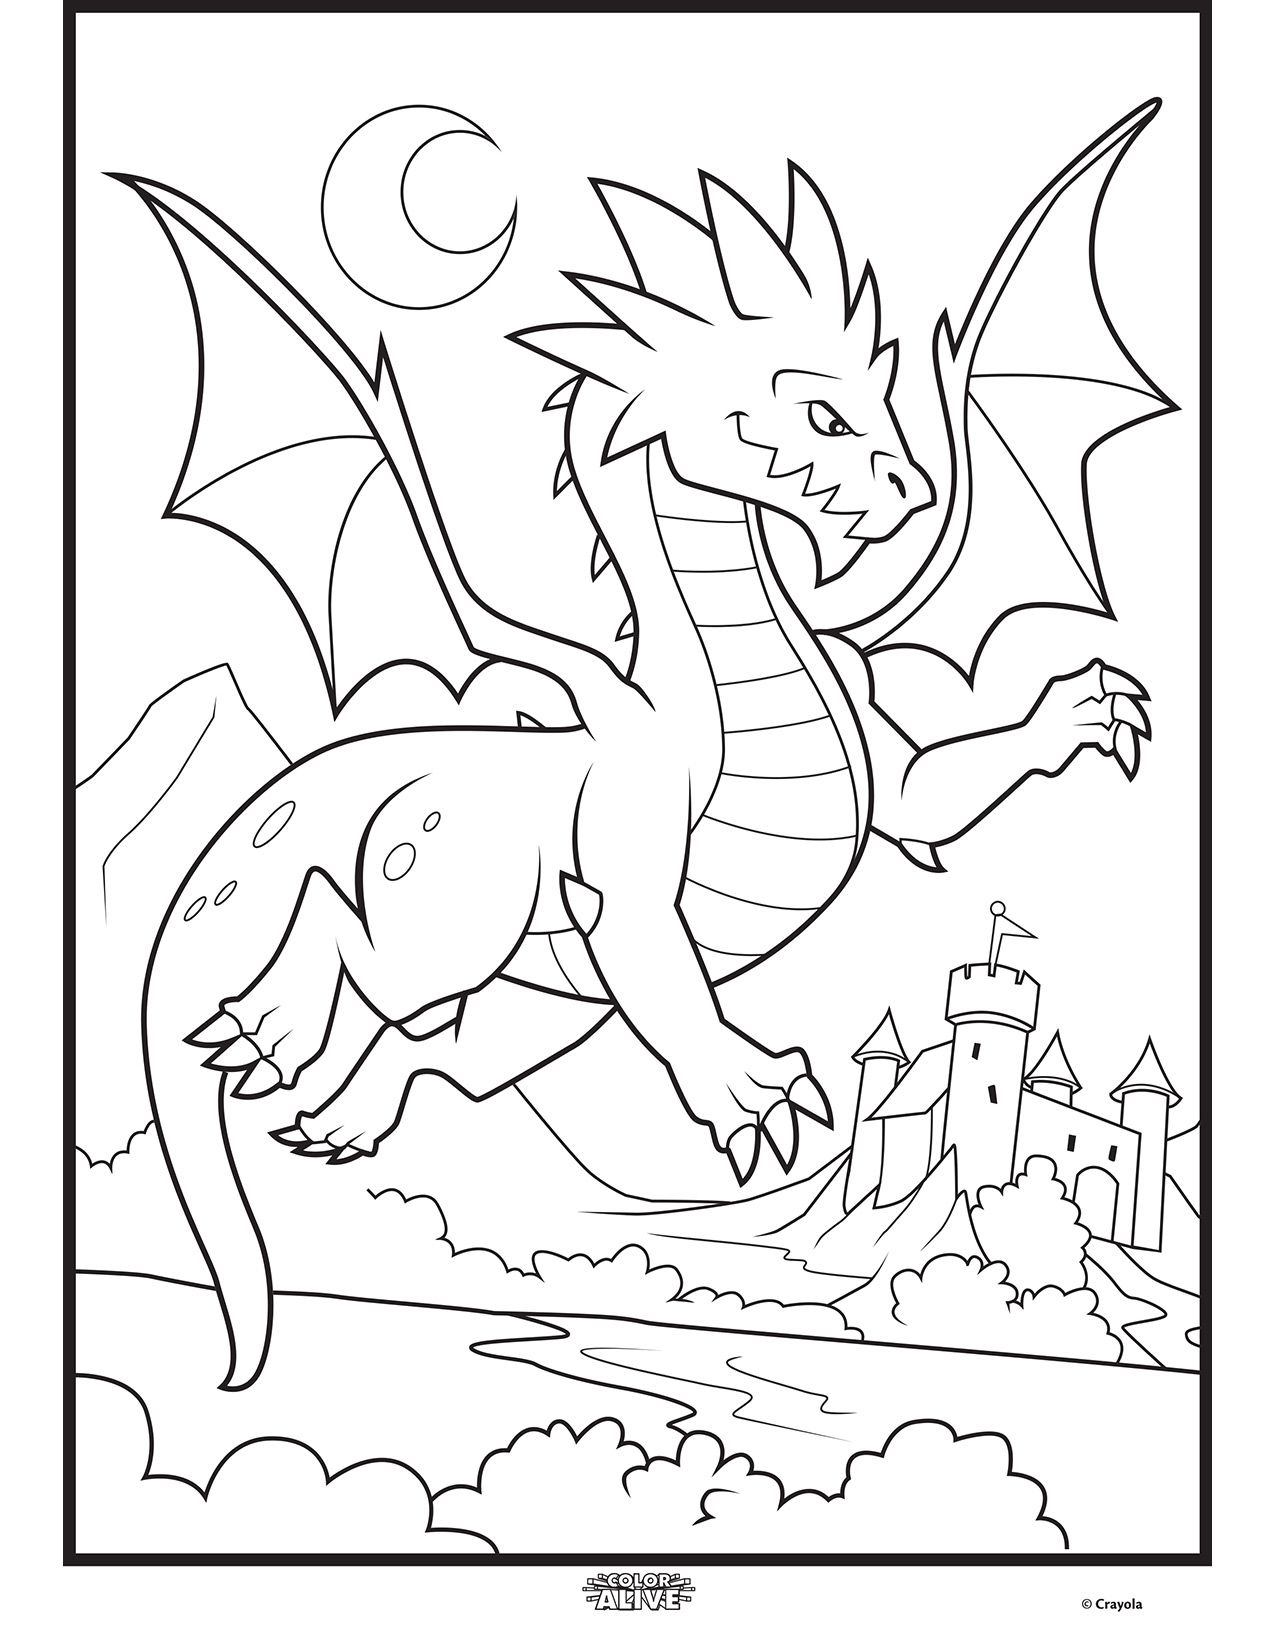 Color Alive Mythical Creatures Dragon Coloring Page Crayola Com Dragon Coloring Page Free Coloring Pages Coloring Pages